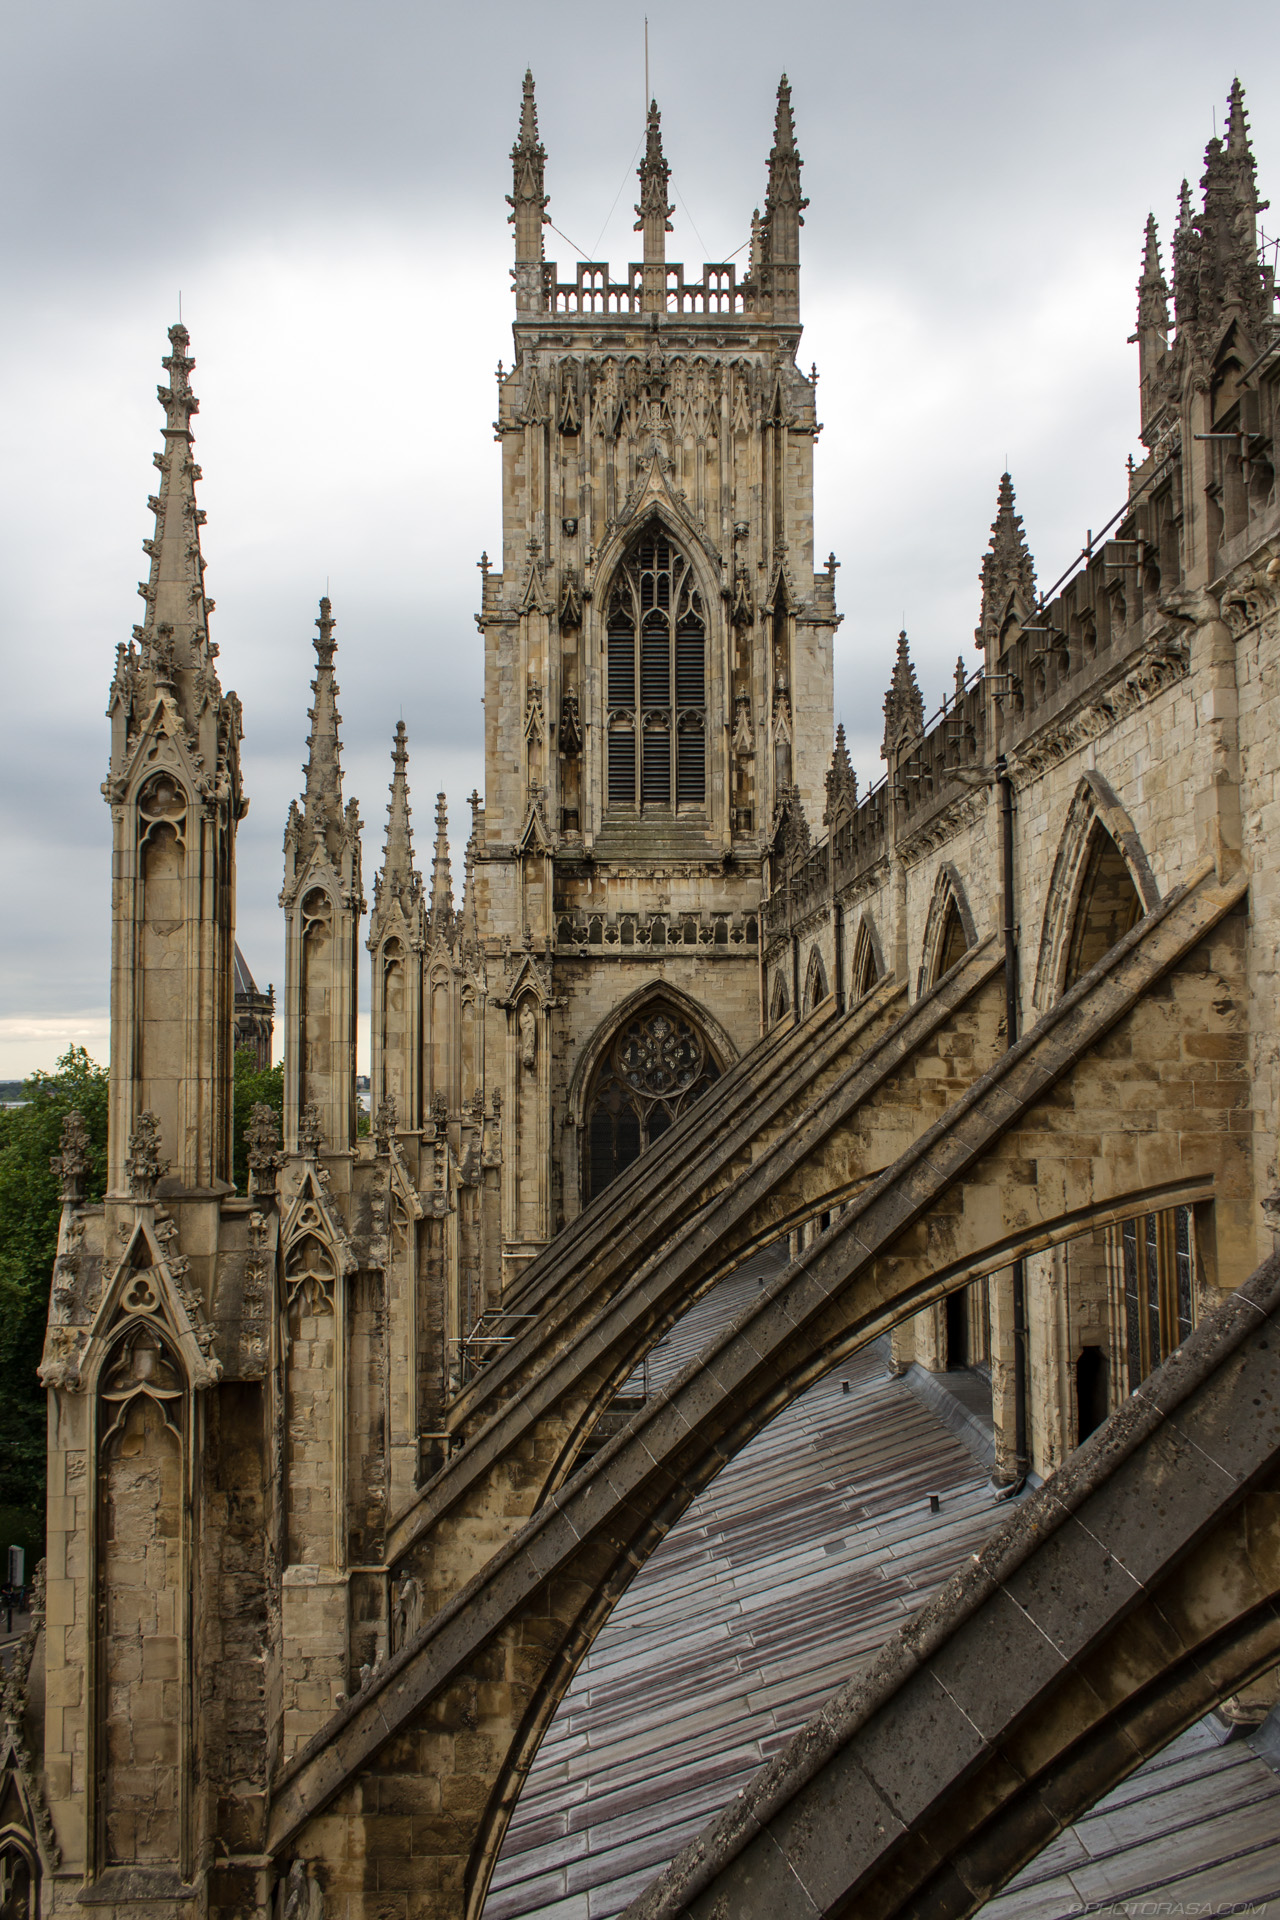 https://photorasa.com/yorkminster-cathedral/west-tower-from-the-roof/